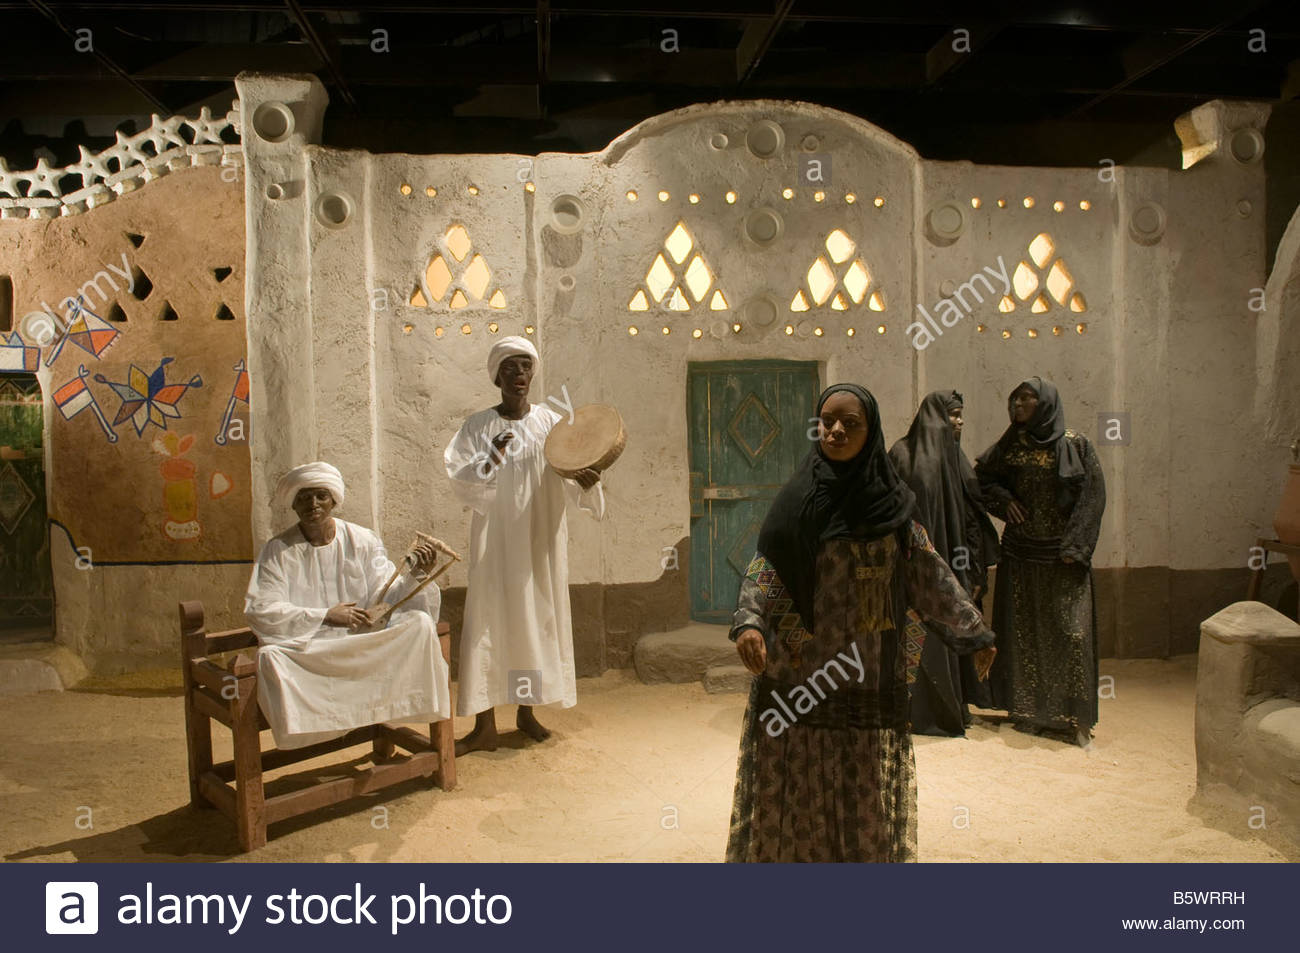 A Nubian ethnography exhibition inside the Nubian Museum in Aswan Egypt - Stock Image